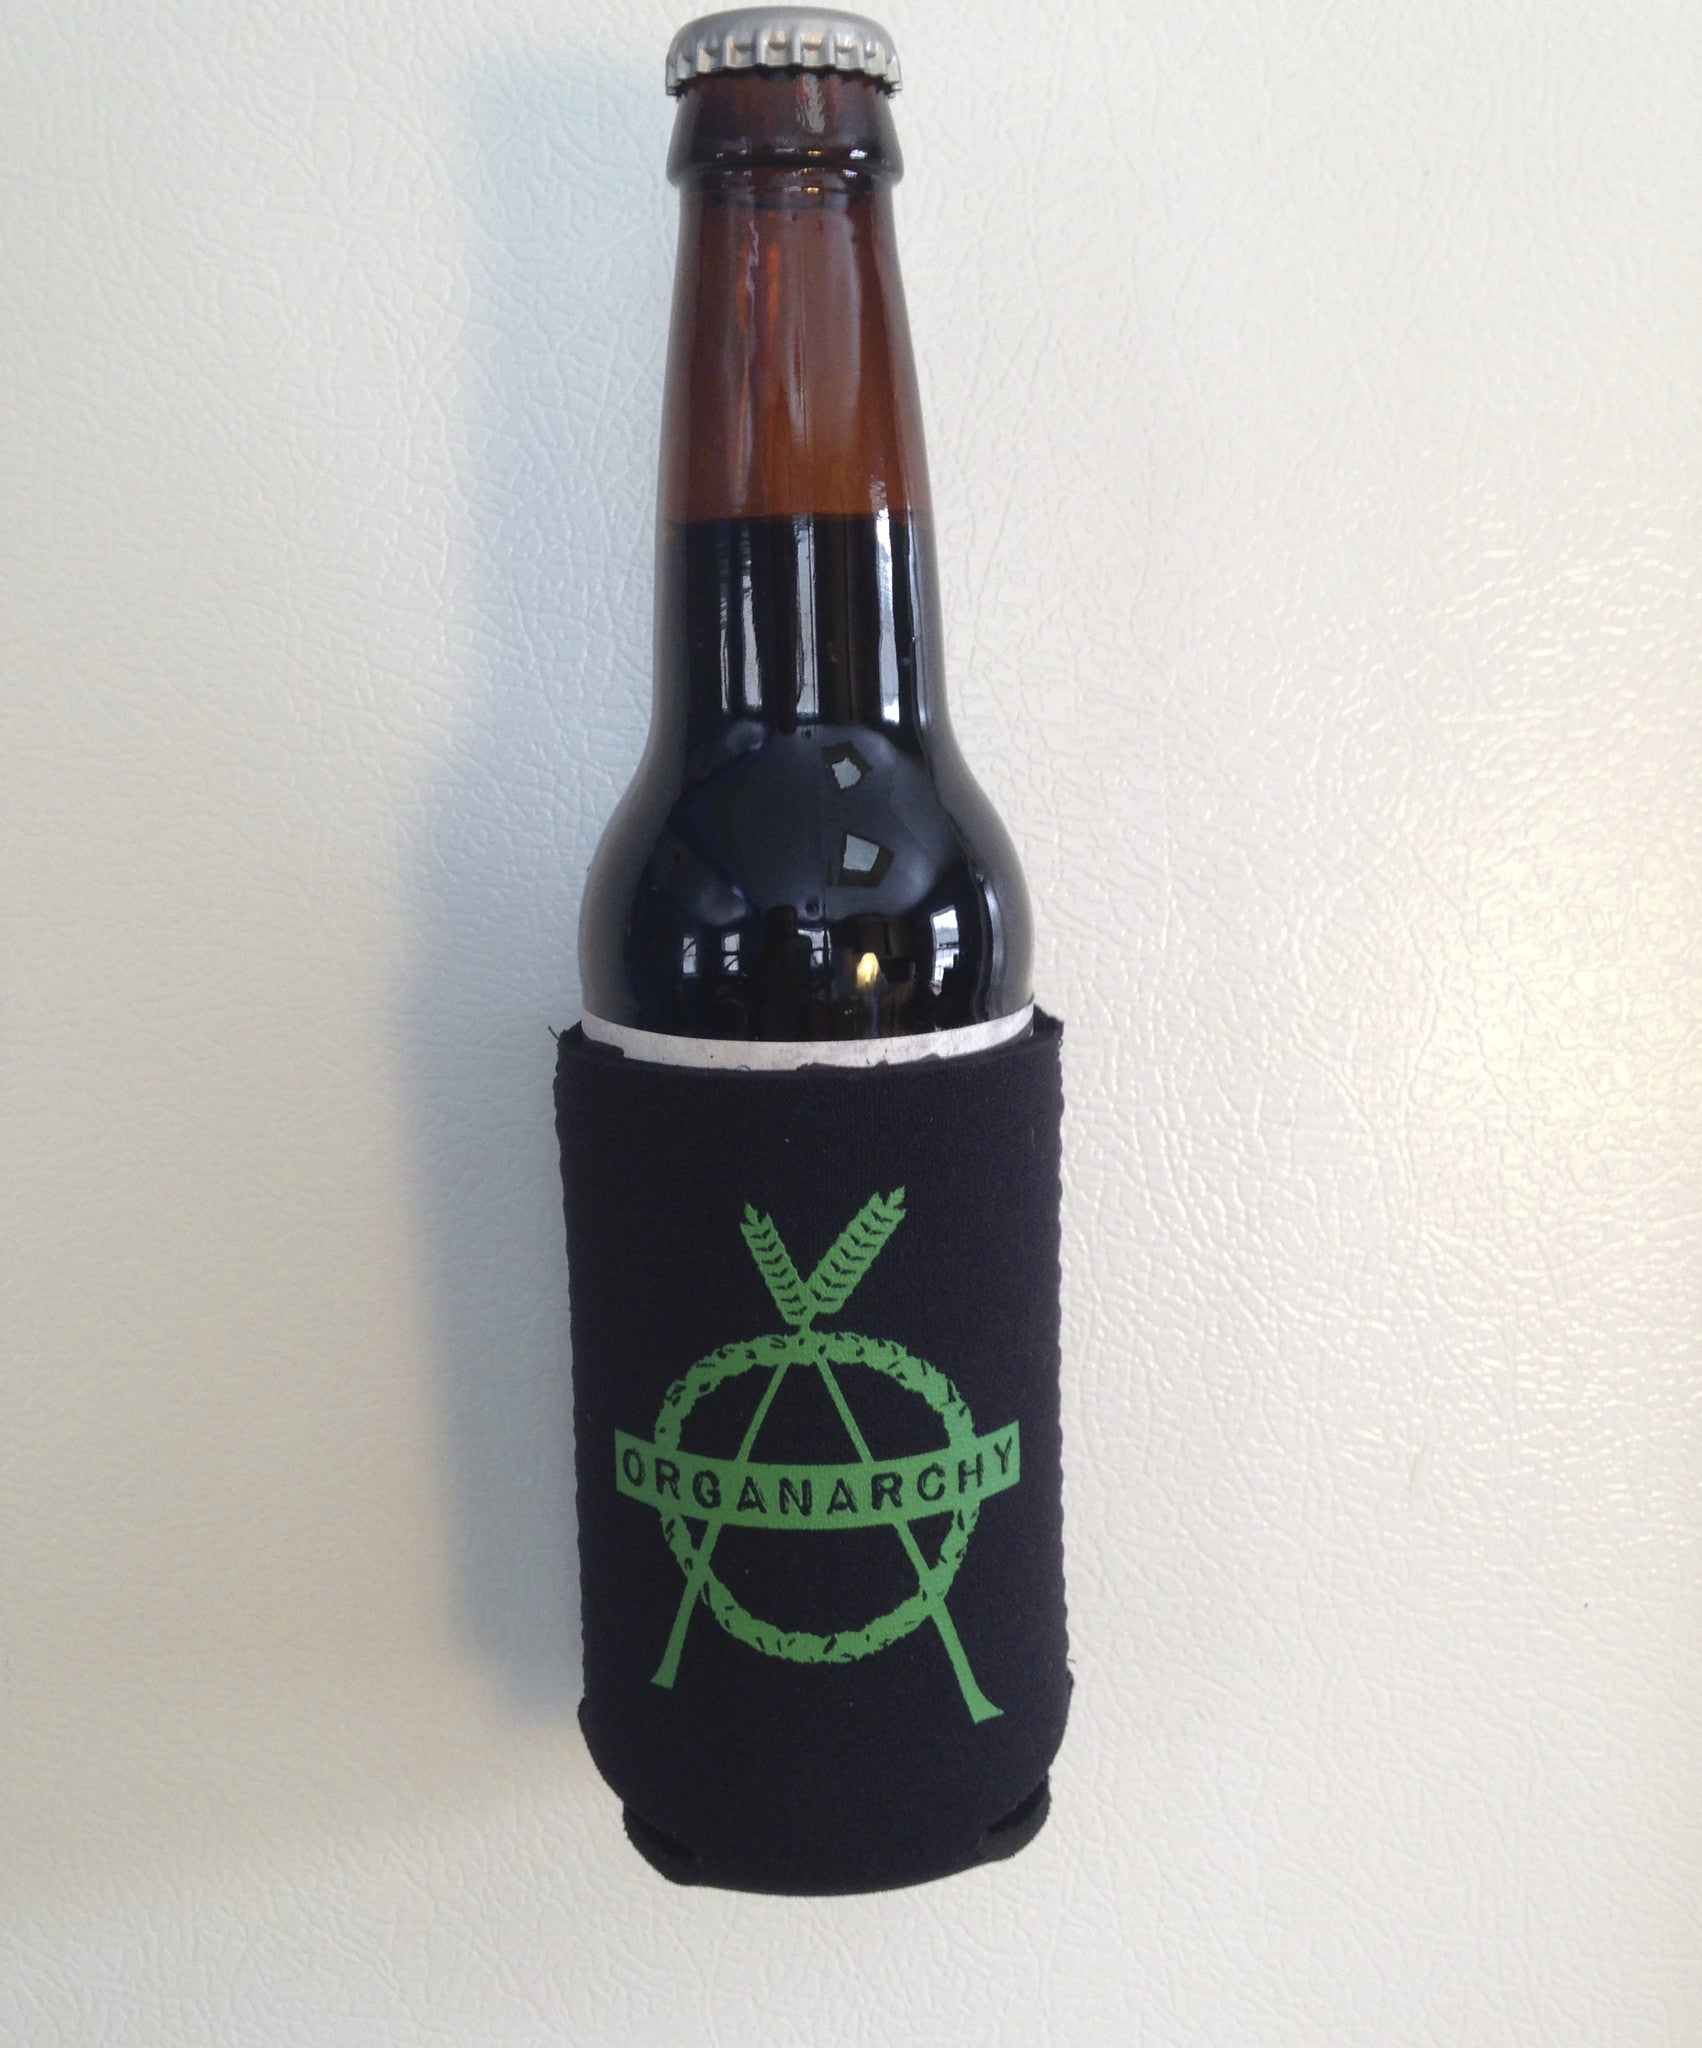 Organarchy Magnetic Koozie